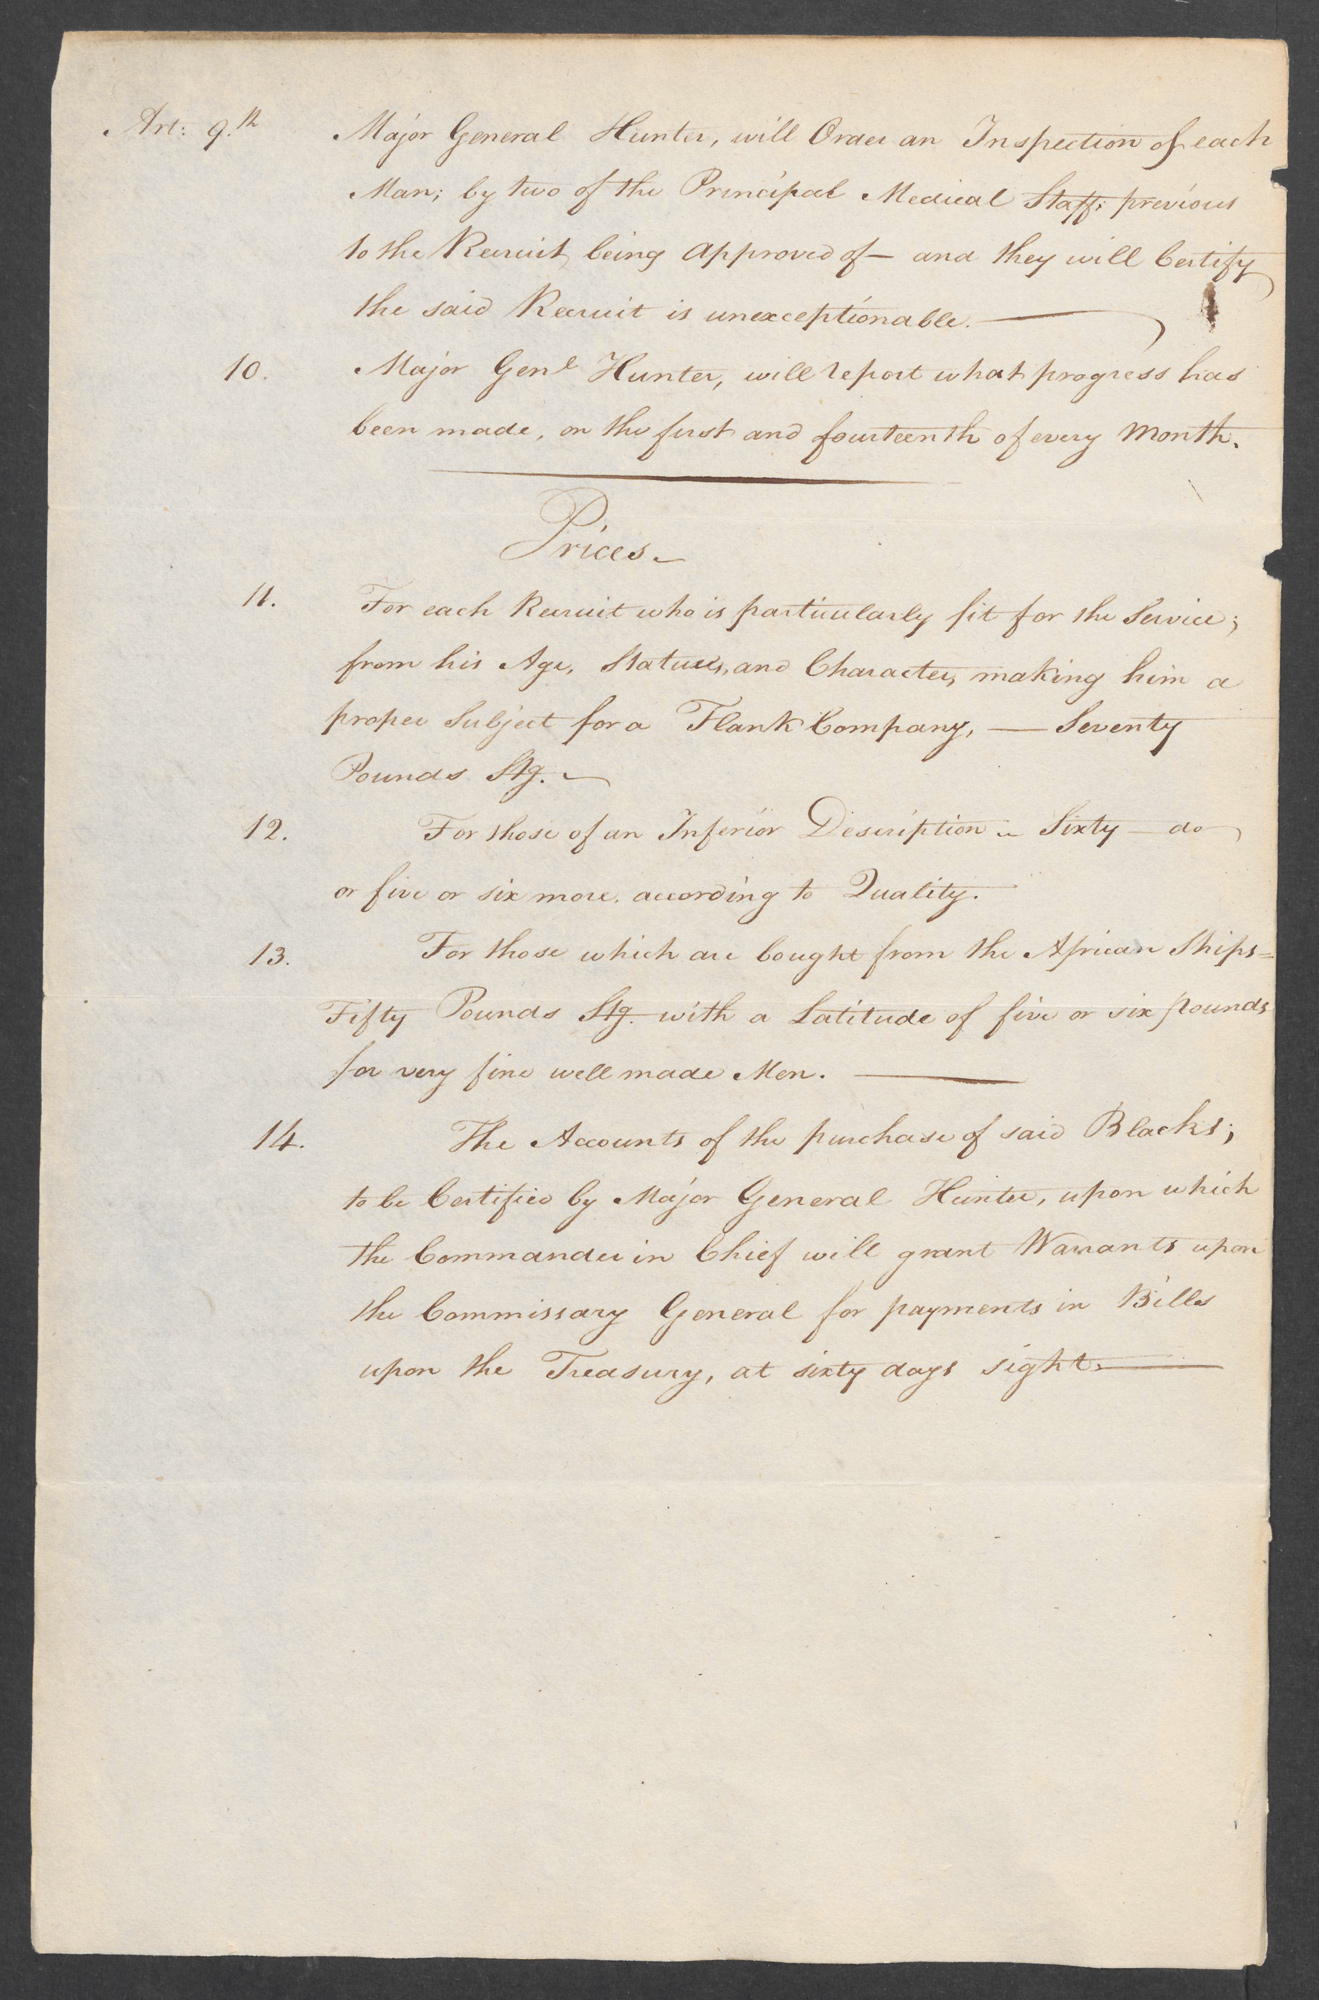 Heads of Instructions to Major Genl Hunter 26 Jan 1797